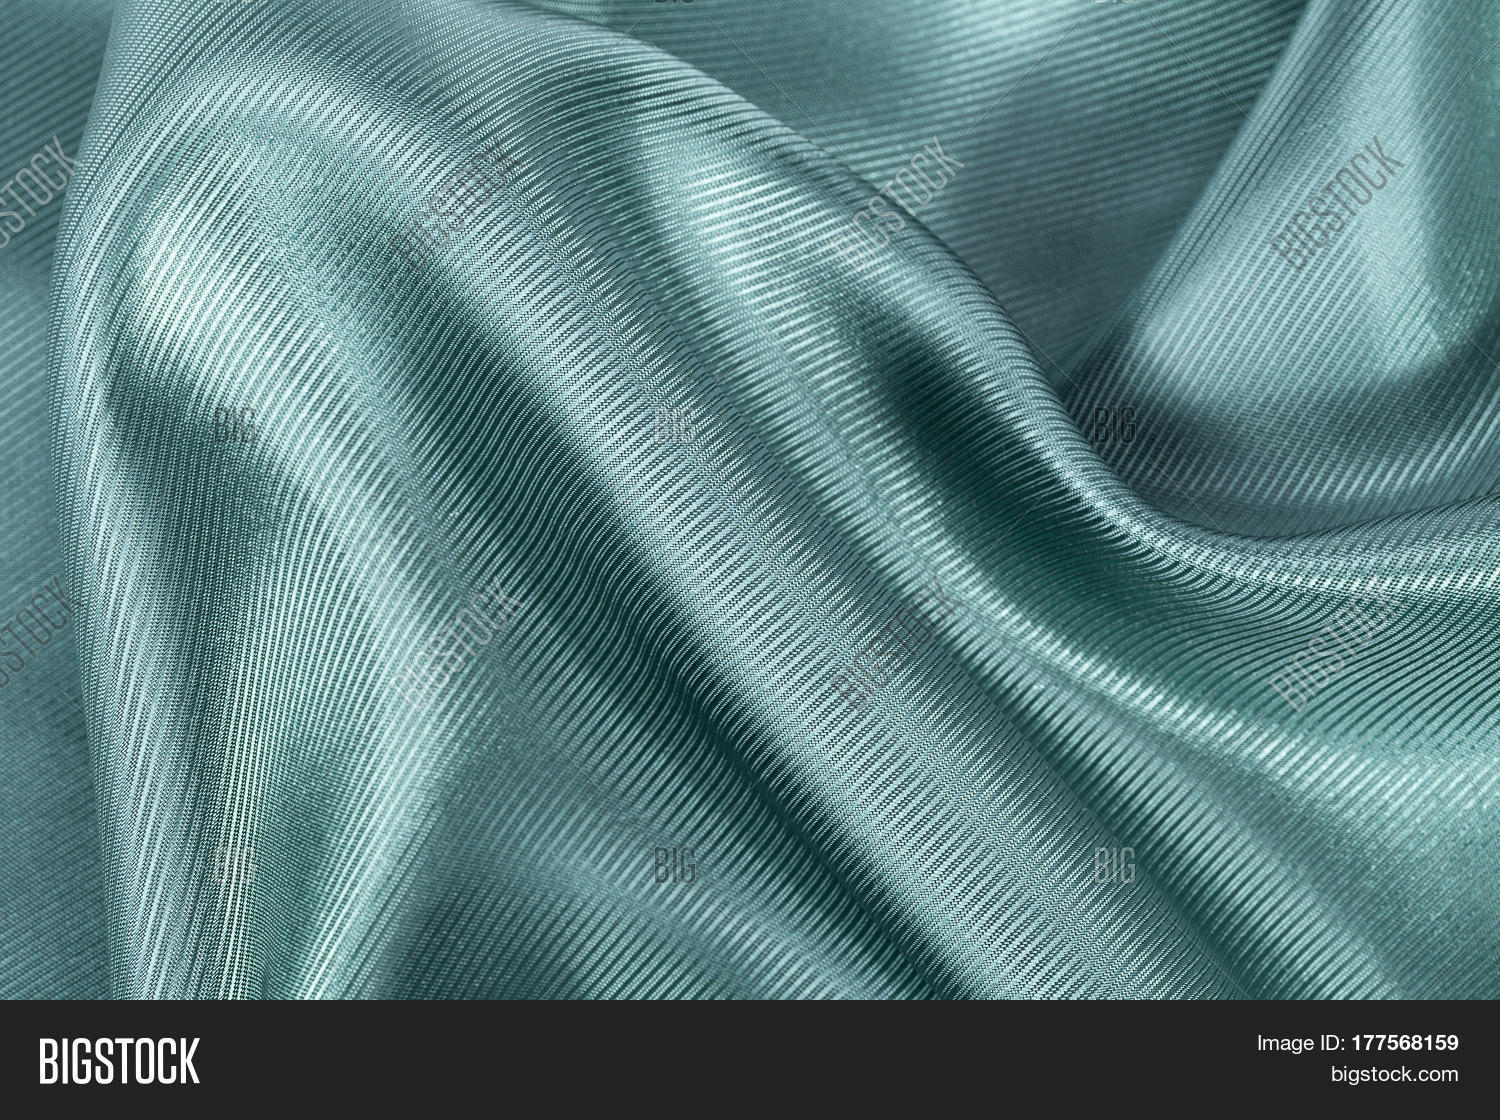 Silk Background Texture Green Shiny Image Amp Photo Bigstock